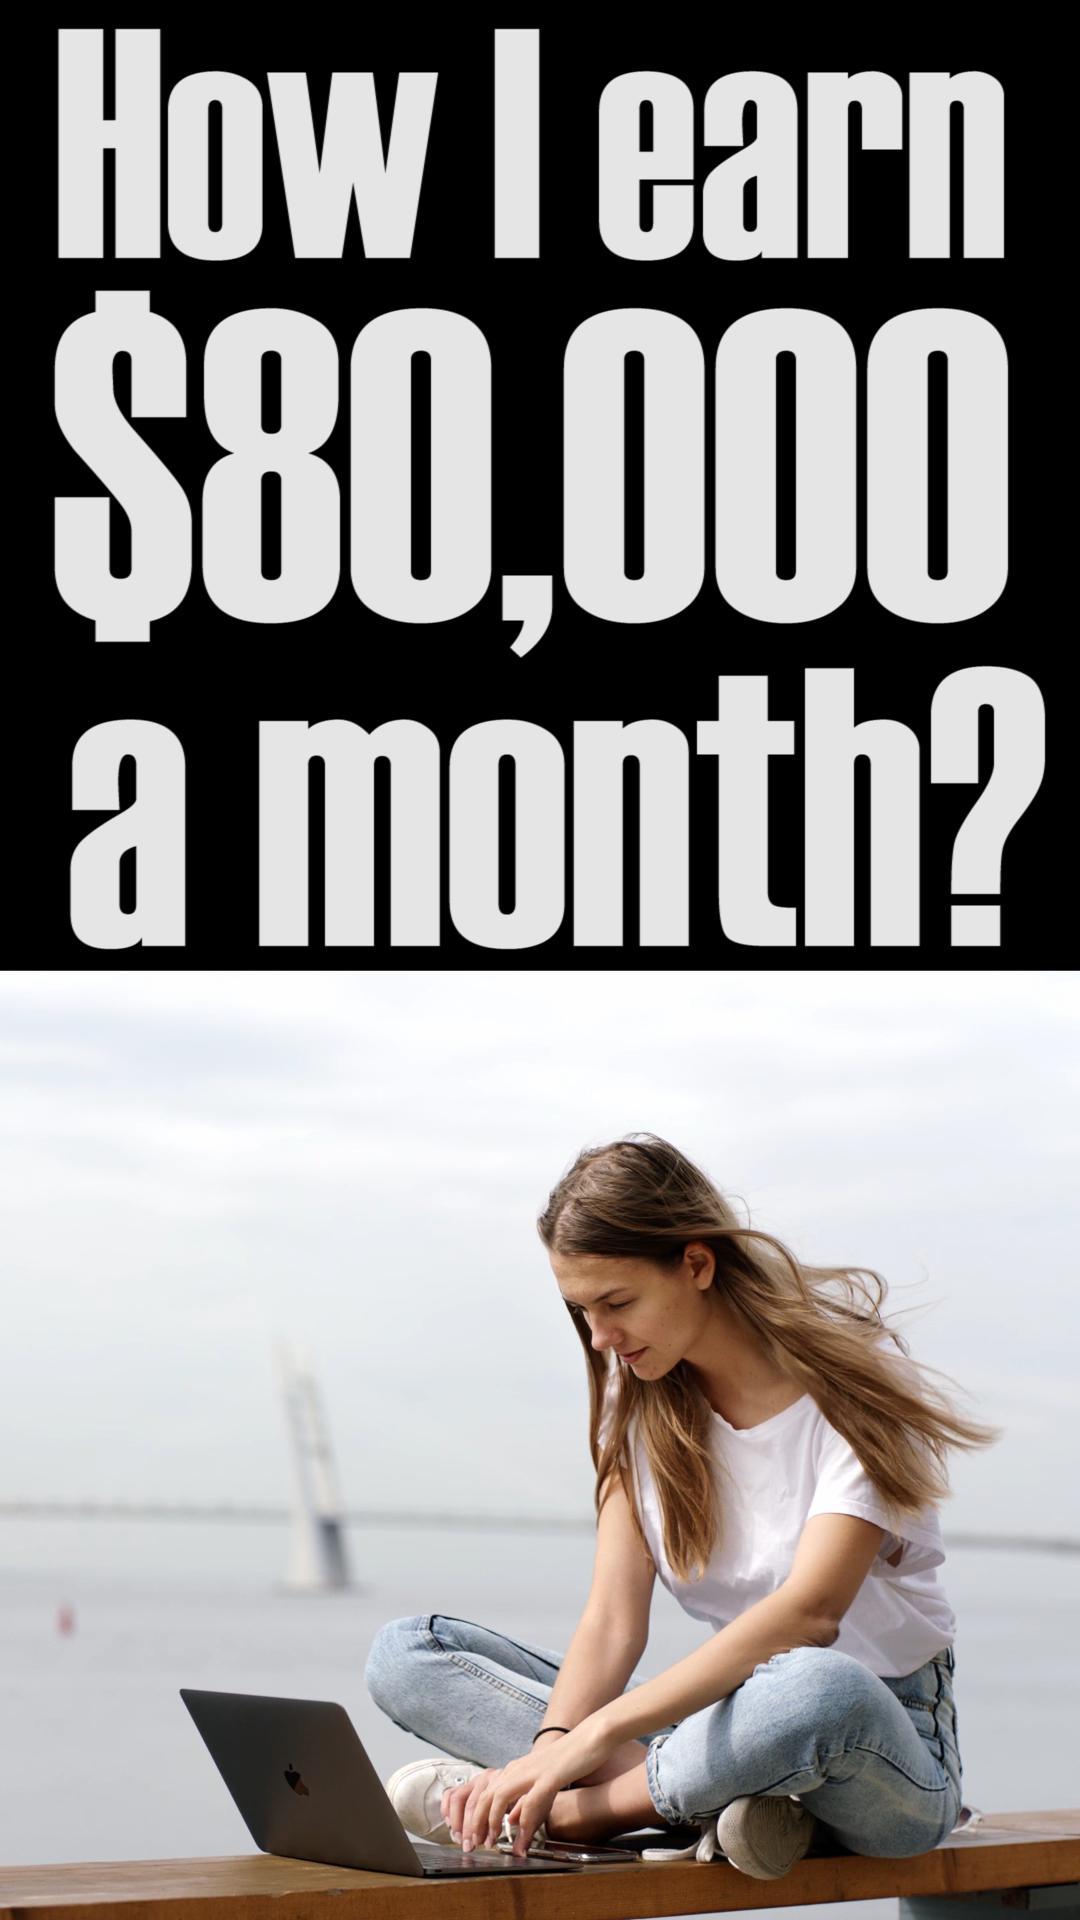 $80,000 every single month!